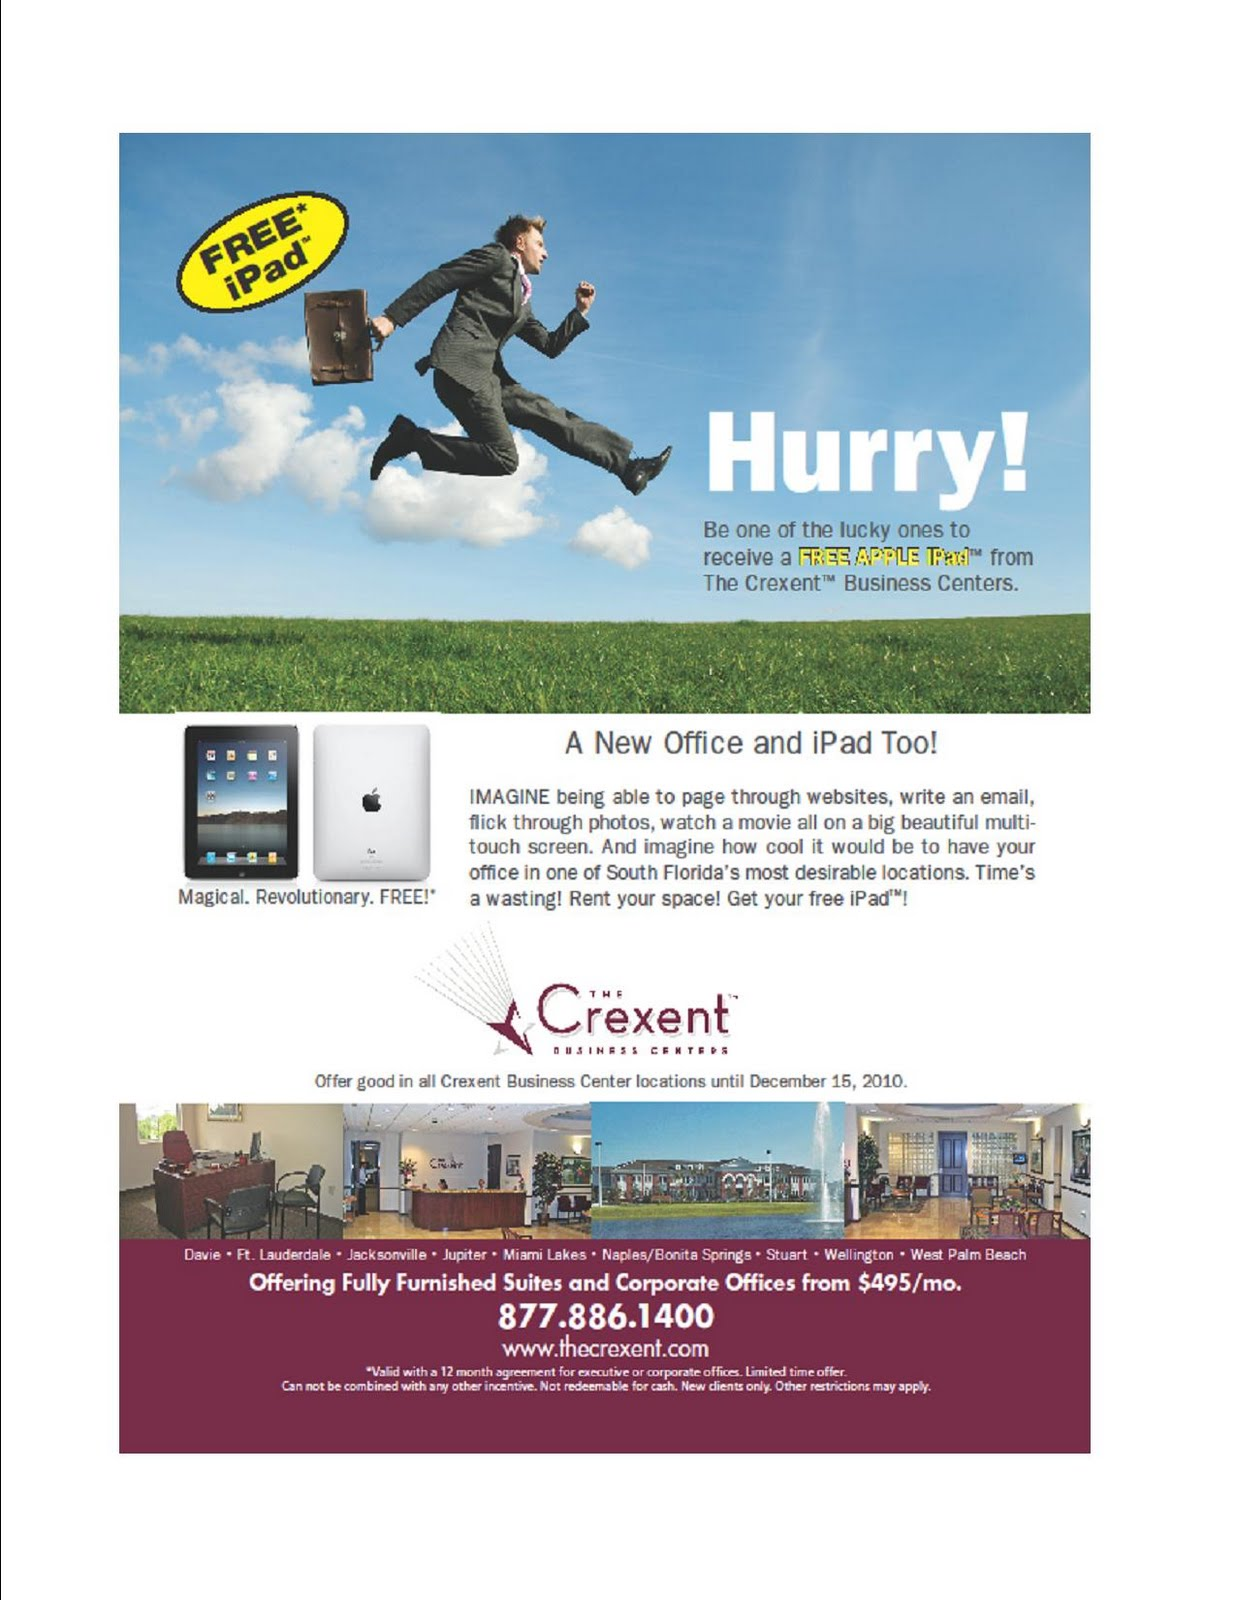 Free Le Ipad At The Crexent Business Centers